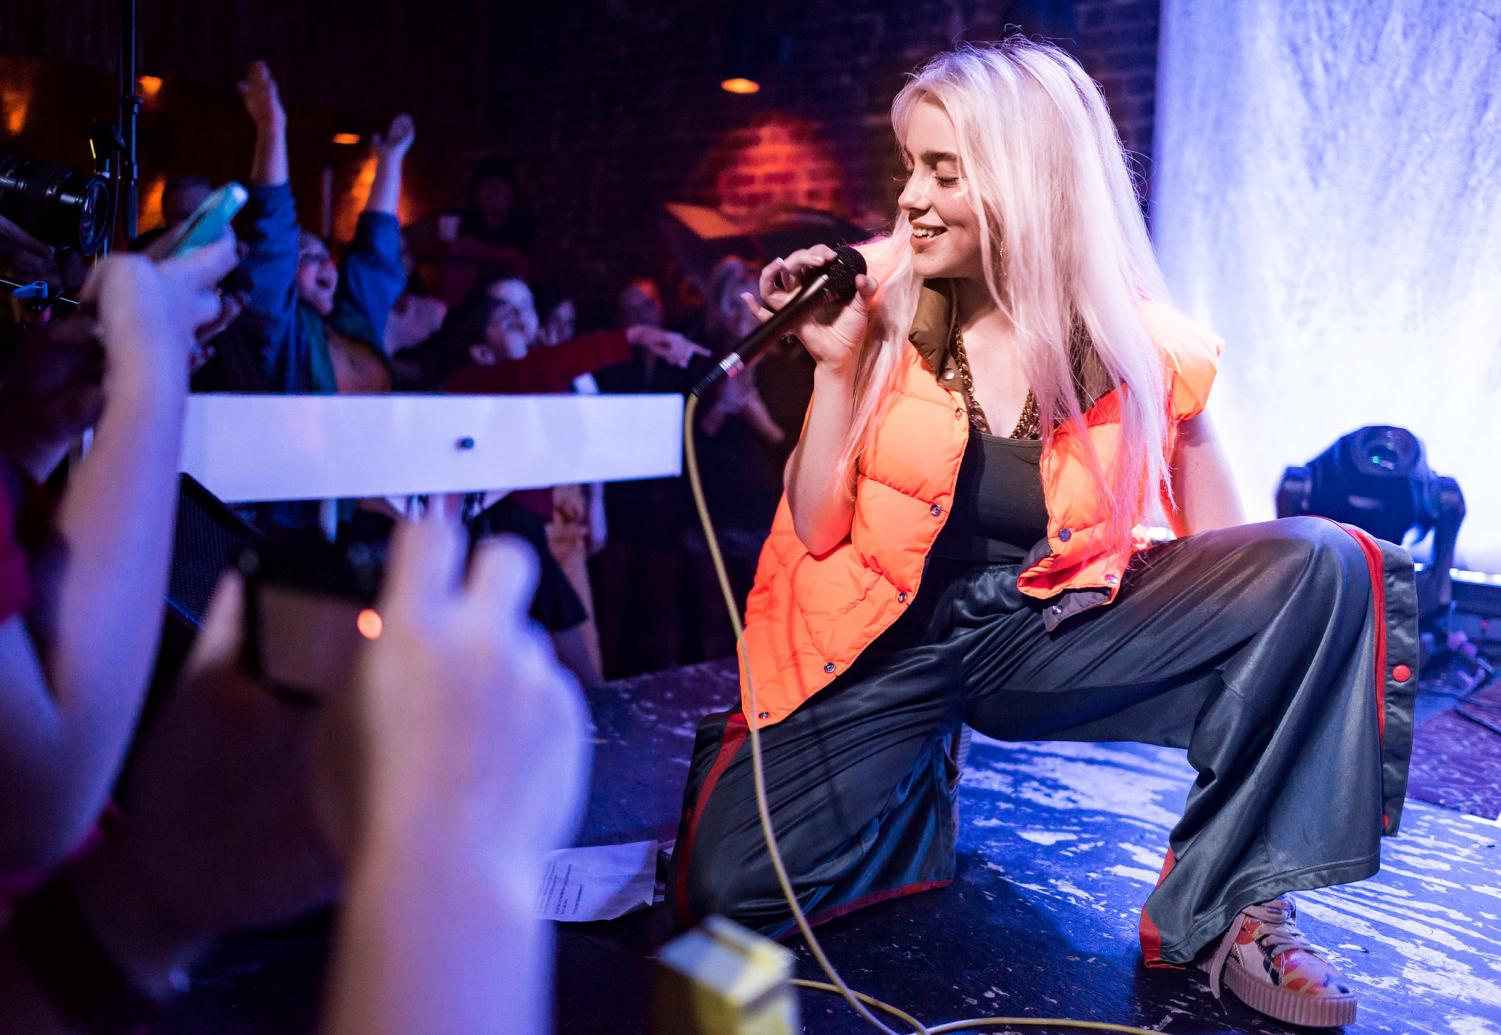 Billie Eilish performed live at The Hi Hat in Highland Park, Los Angeles, California, on Thursday, August 10, 2017. This year her new album is one to look for.